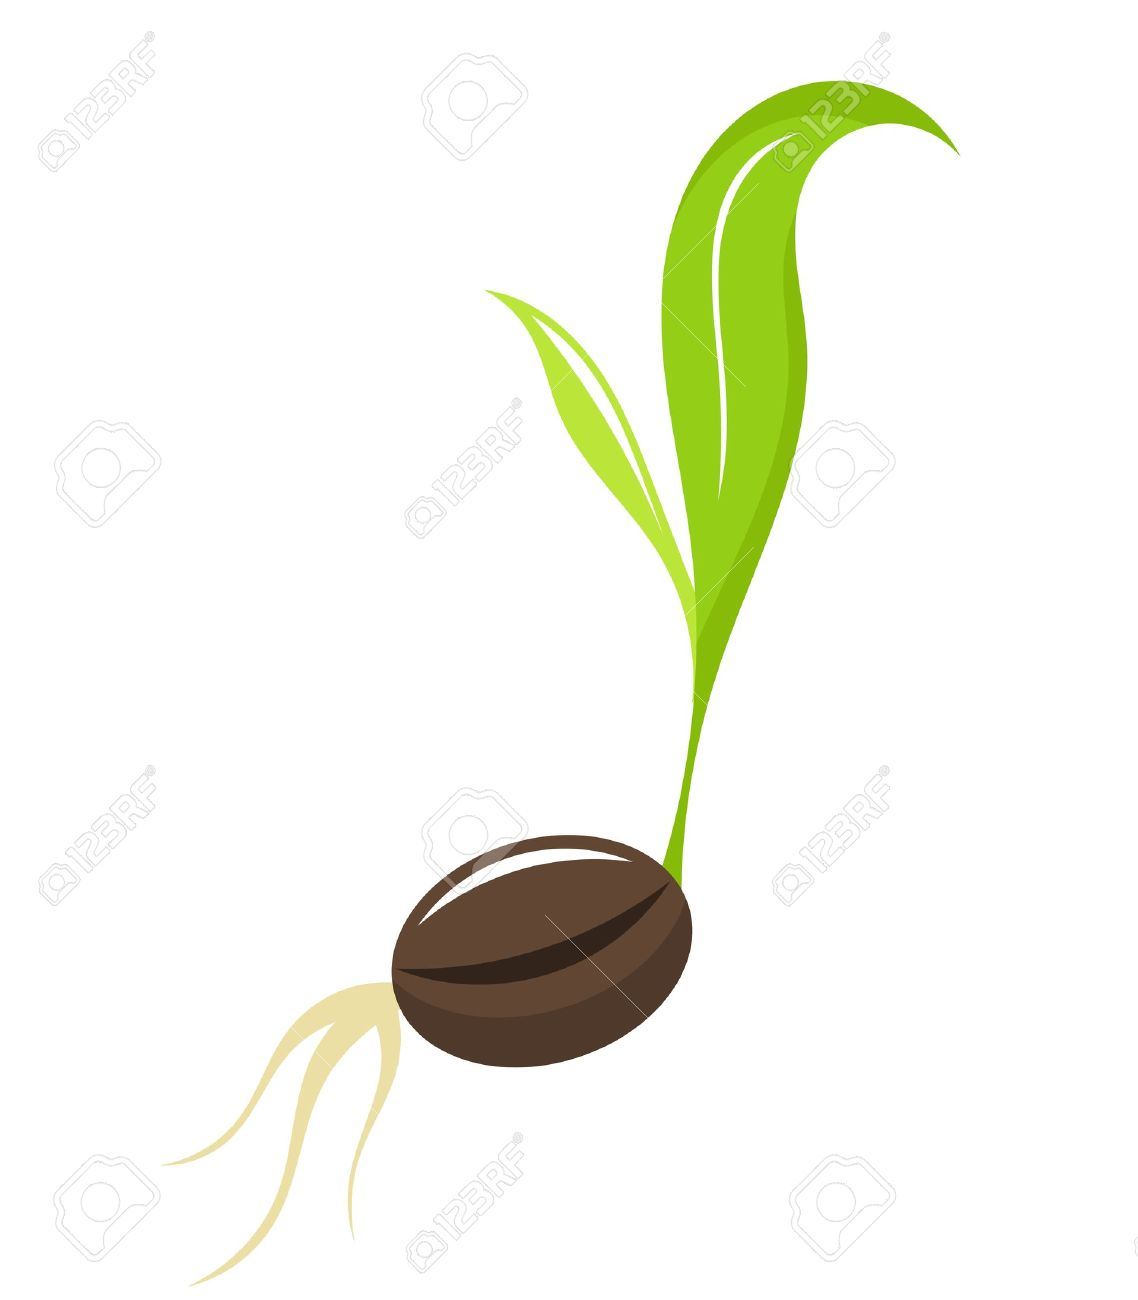 Seed growing clipart jpg free stock Seed Planting Cliparts   Free download best Seed Planting ... jpg free stock